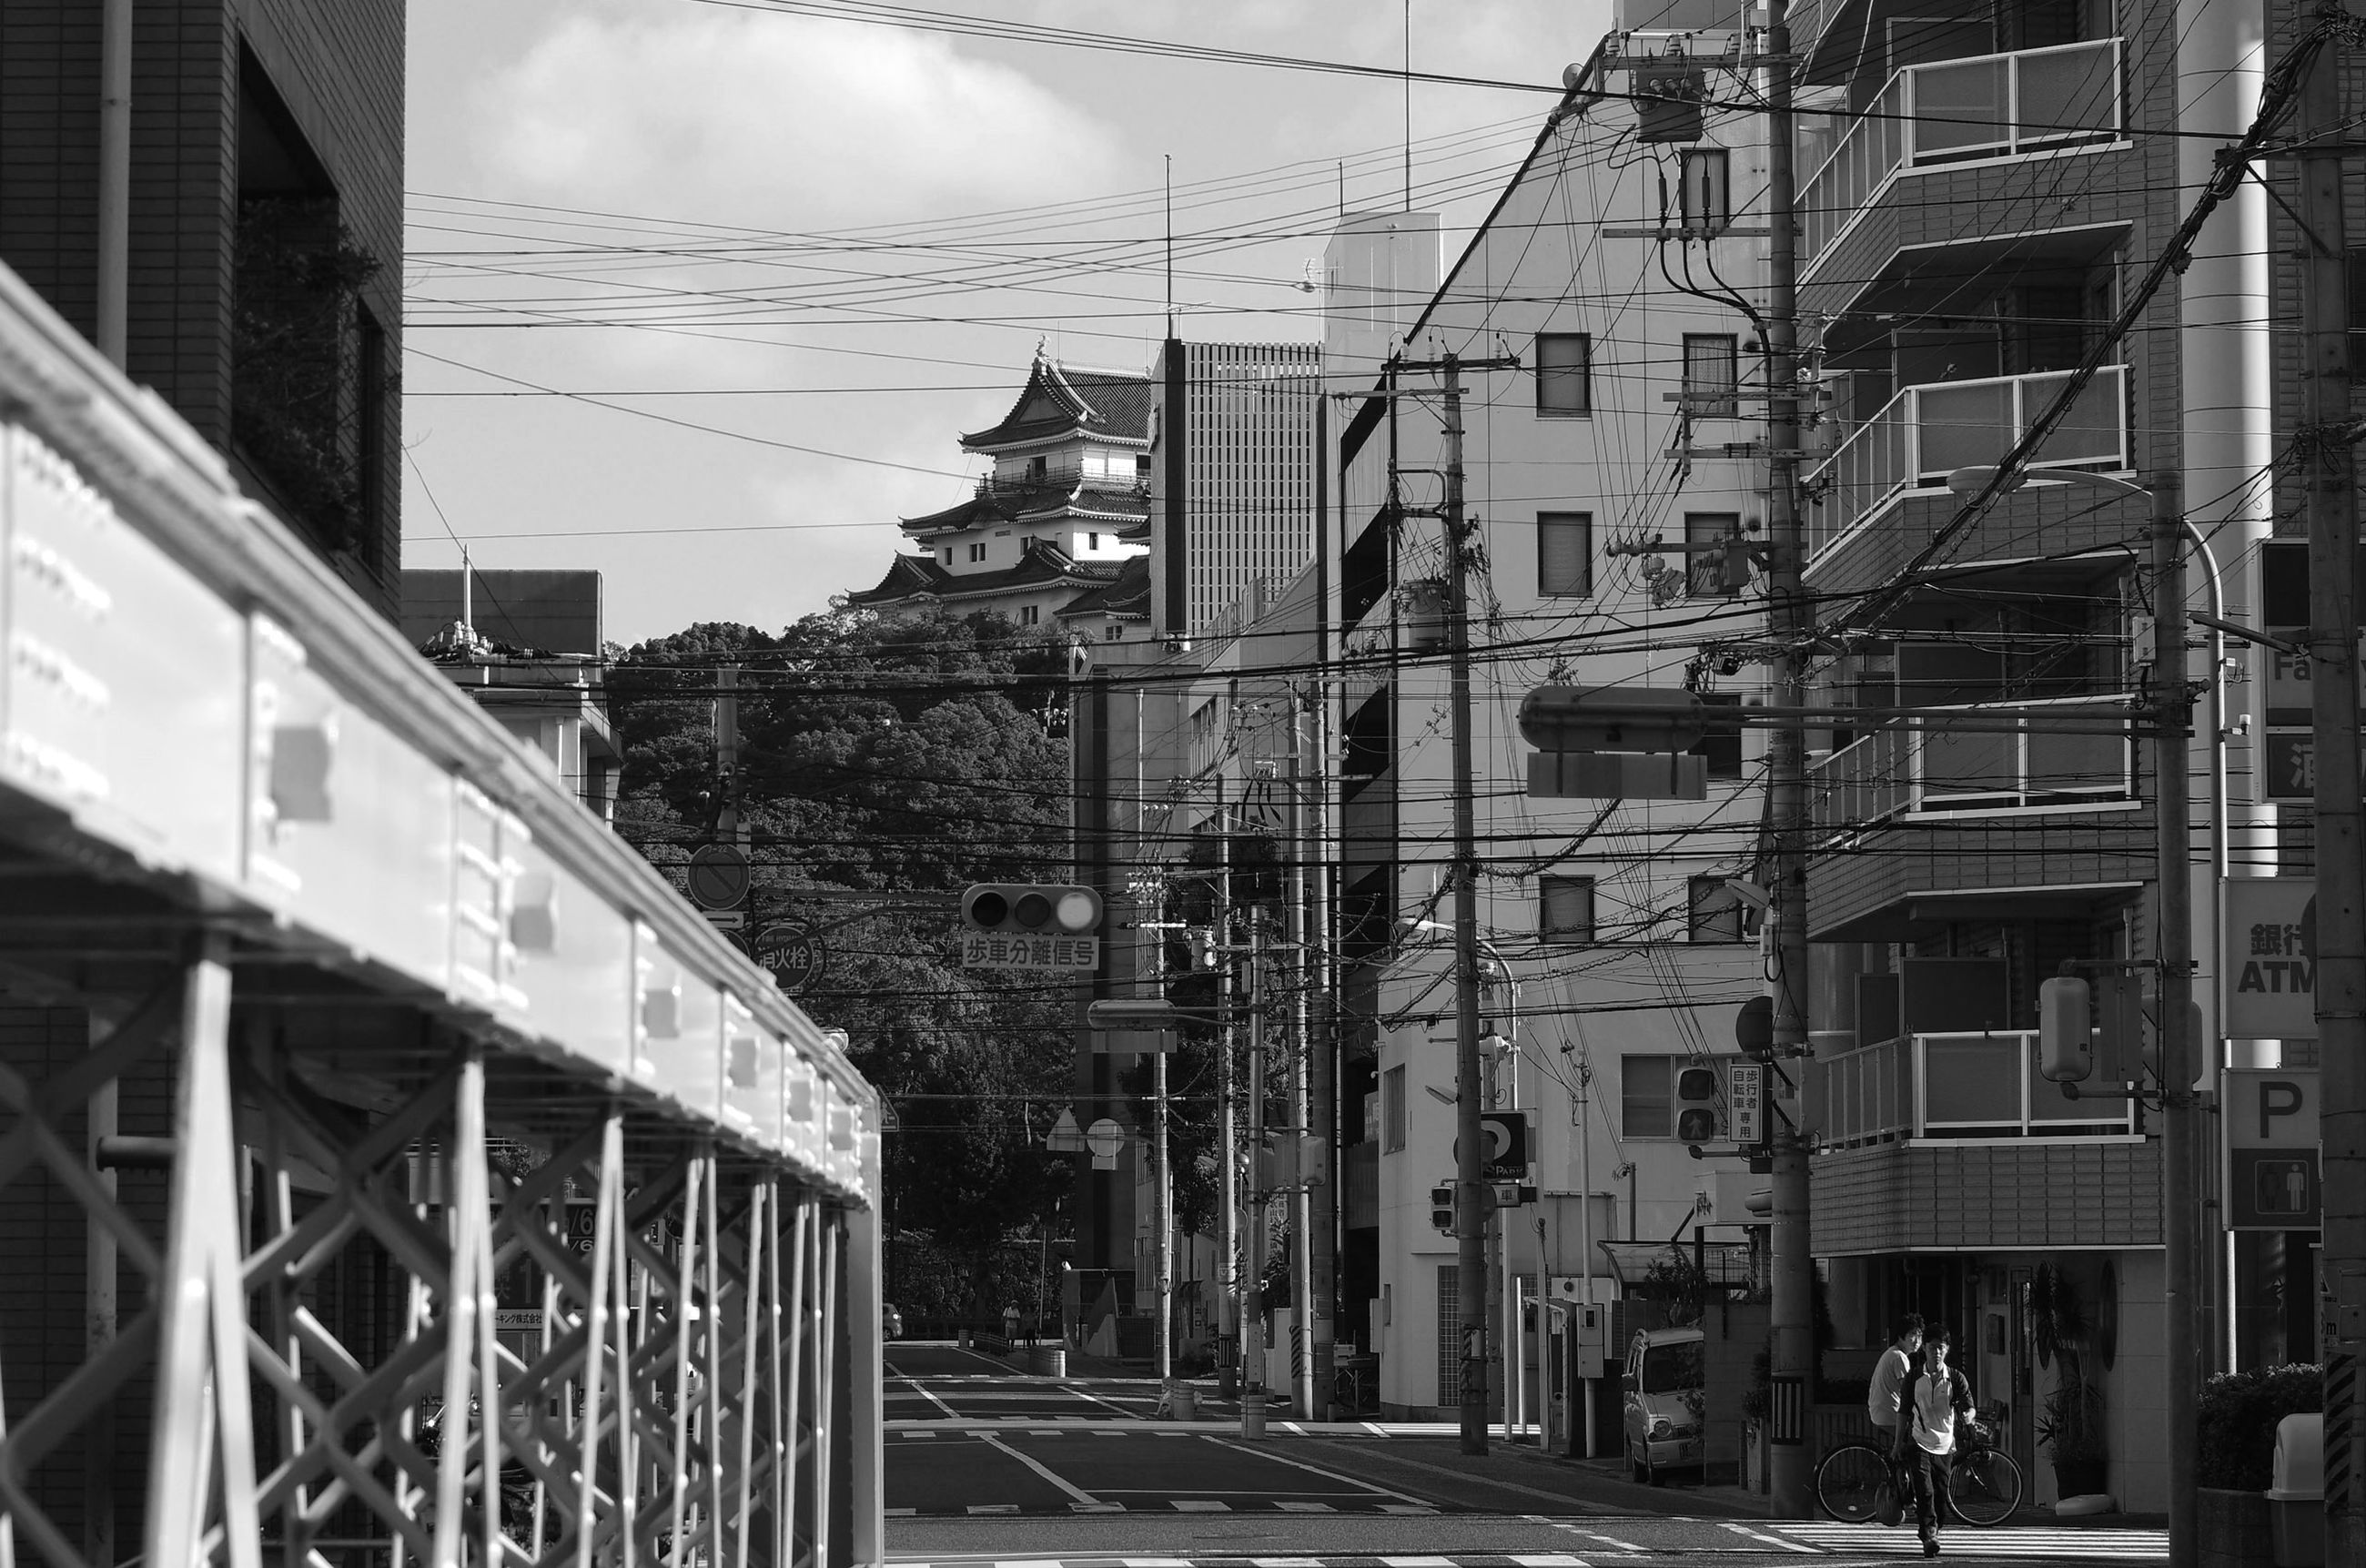 architecture, building exterior, built structure, residential building, building, residential structure, power line, transportation, cable, city, sky, street, house, the way forward, window, day, outdoors, railing, no people, diminishing perspective